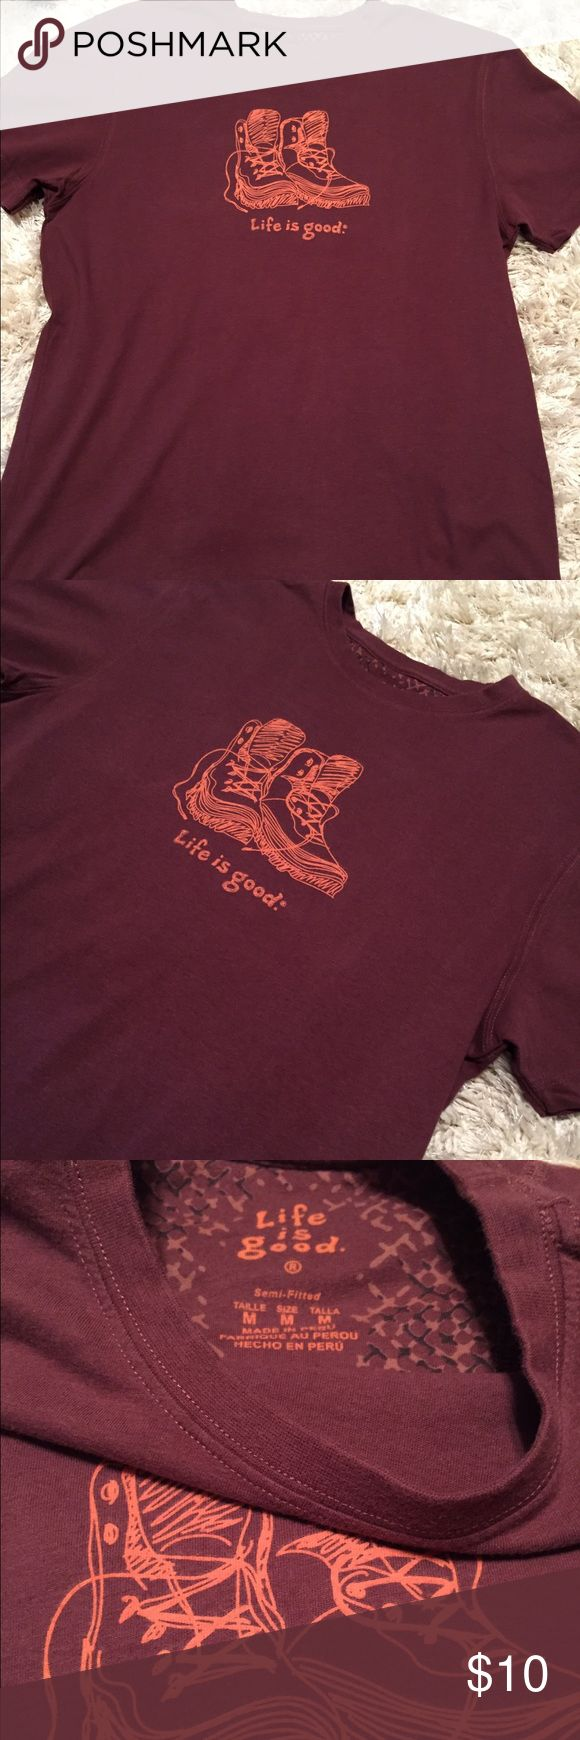 Life is Good Hiking Boots TShirt Maroon Medium Life is Good Hiking TShirt. Maroon color with orange stitching. In very good condition with no stains or tears. Smoke free home. No fading. So cute for festivals this summer or Hiking the trails! Life is Good Tops Tees - Short Sleeve